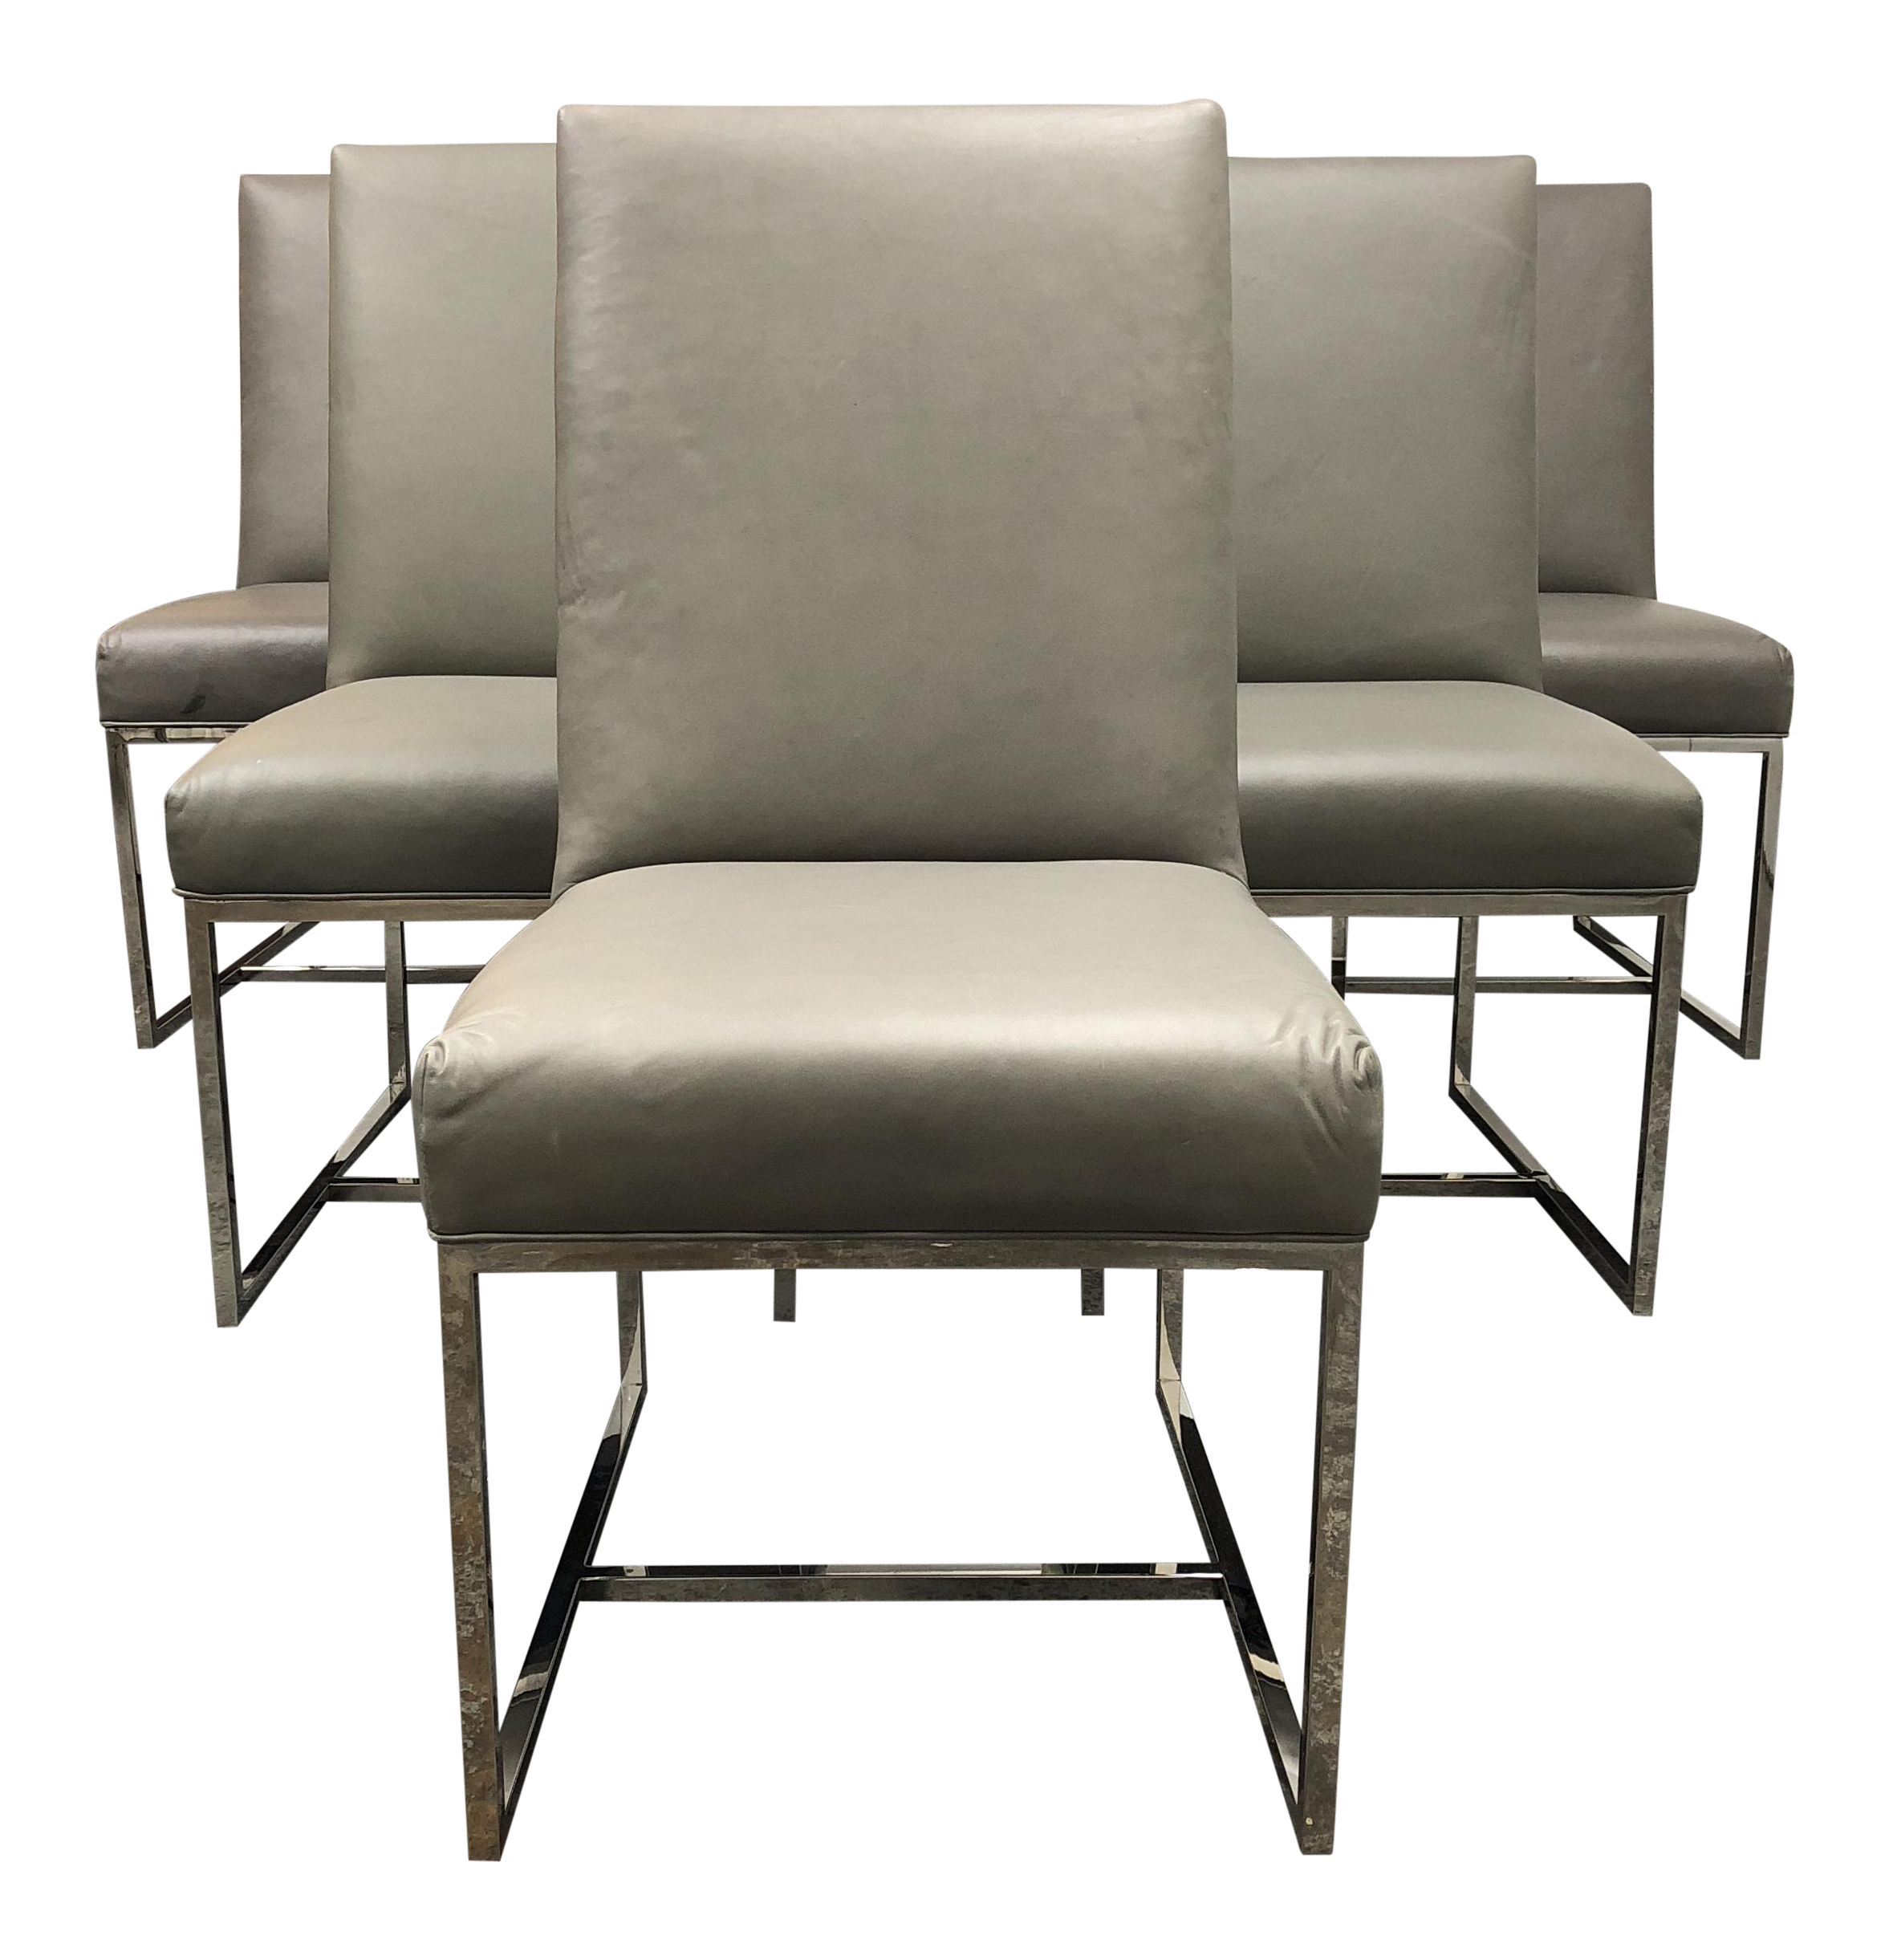 restoration outdoor furniture. Restoration Hardware Grant Leather Chairs - Set Of 6 Outdoor Furniture